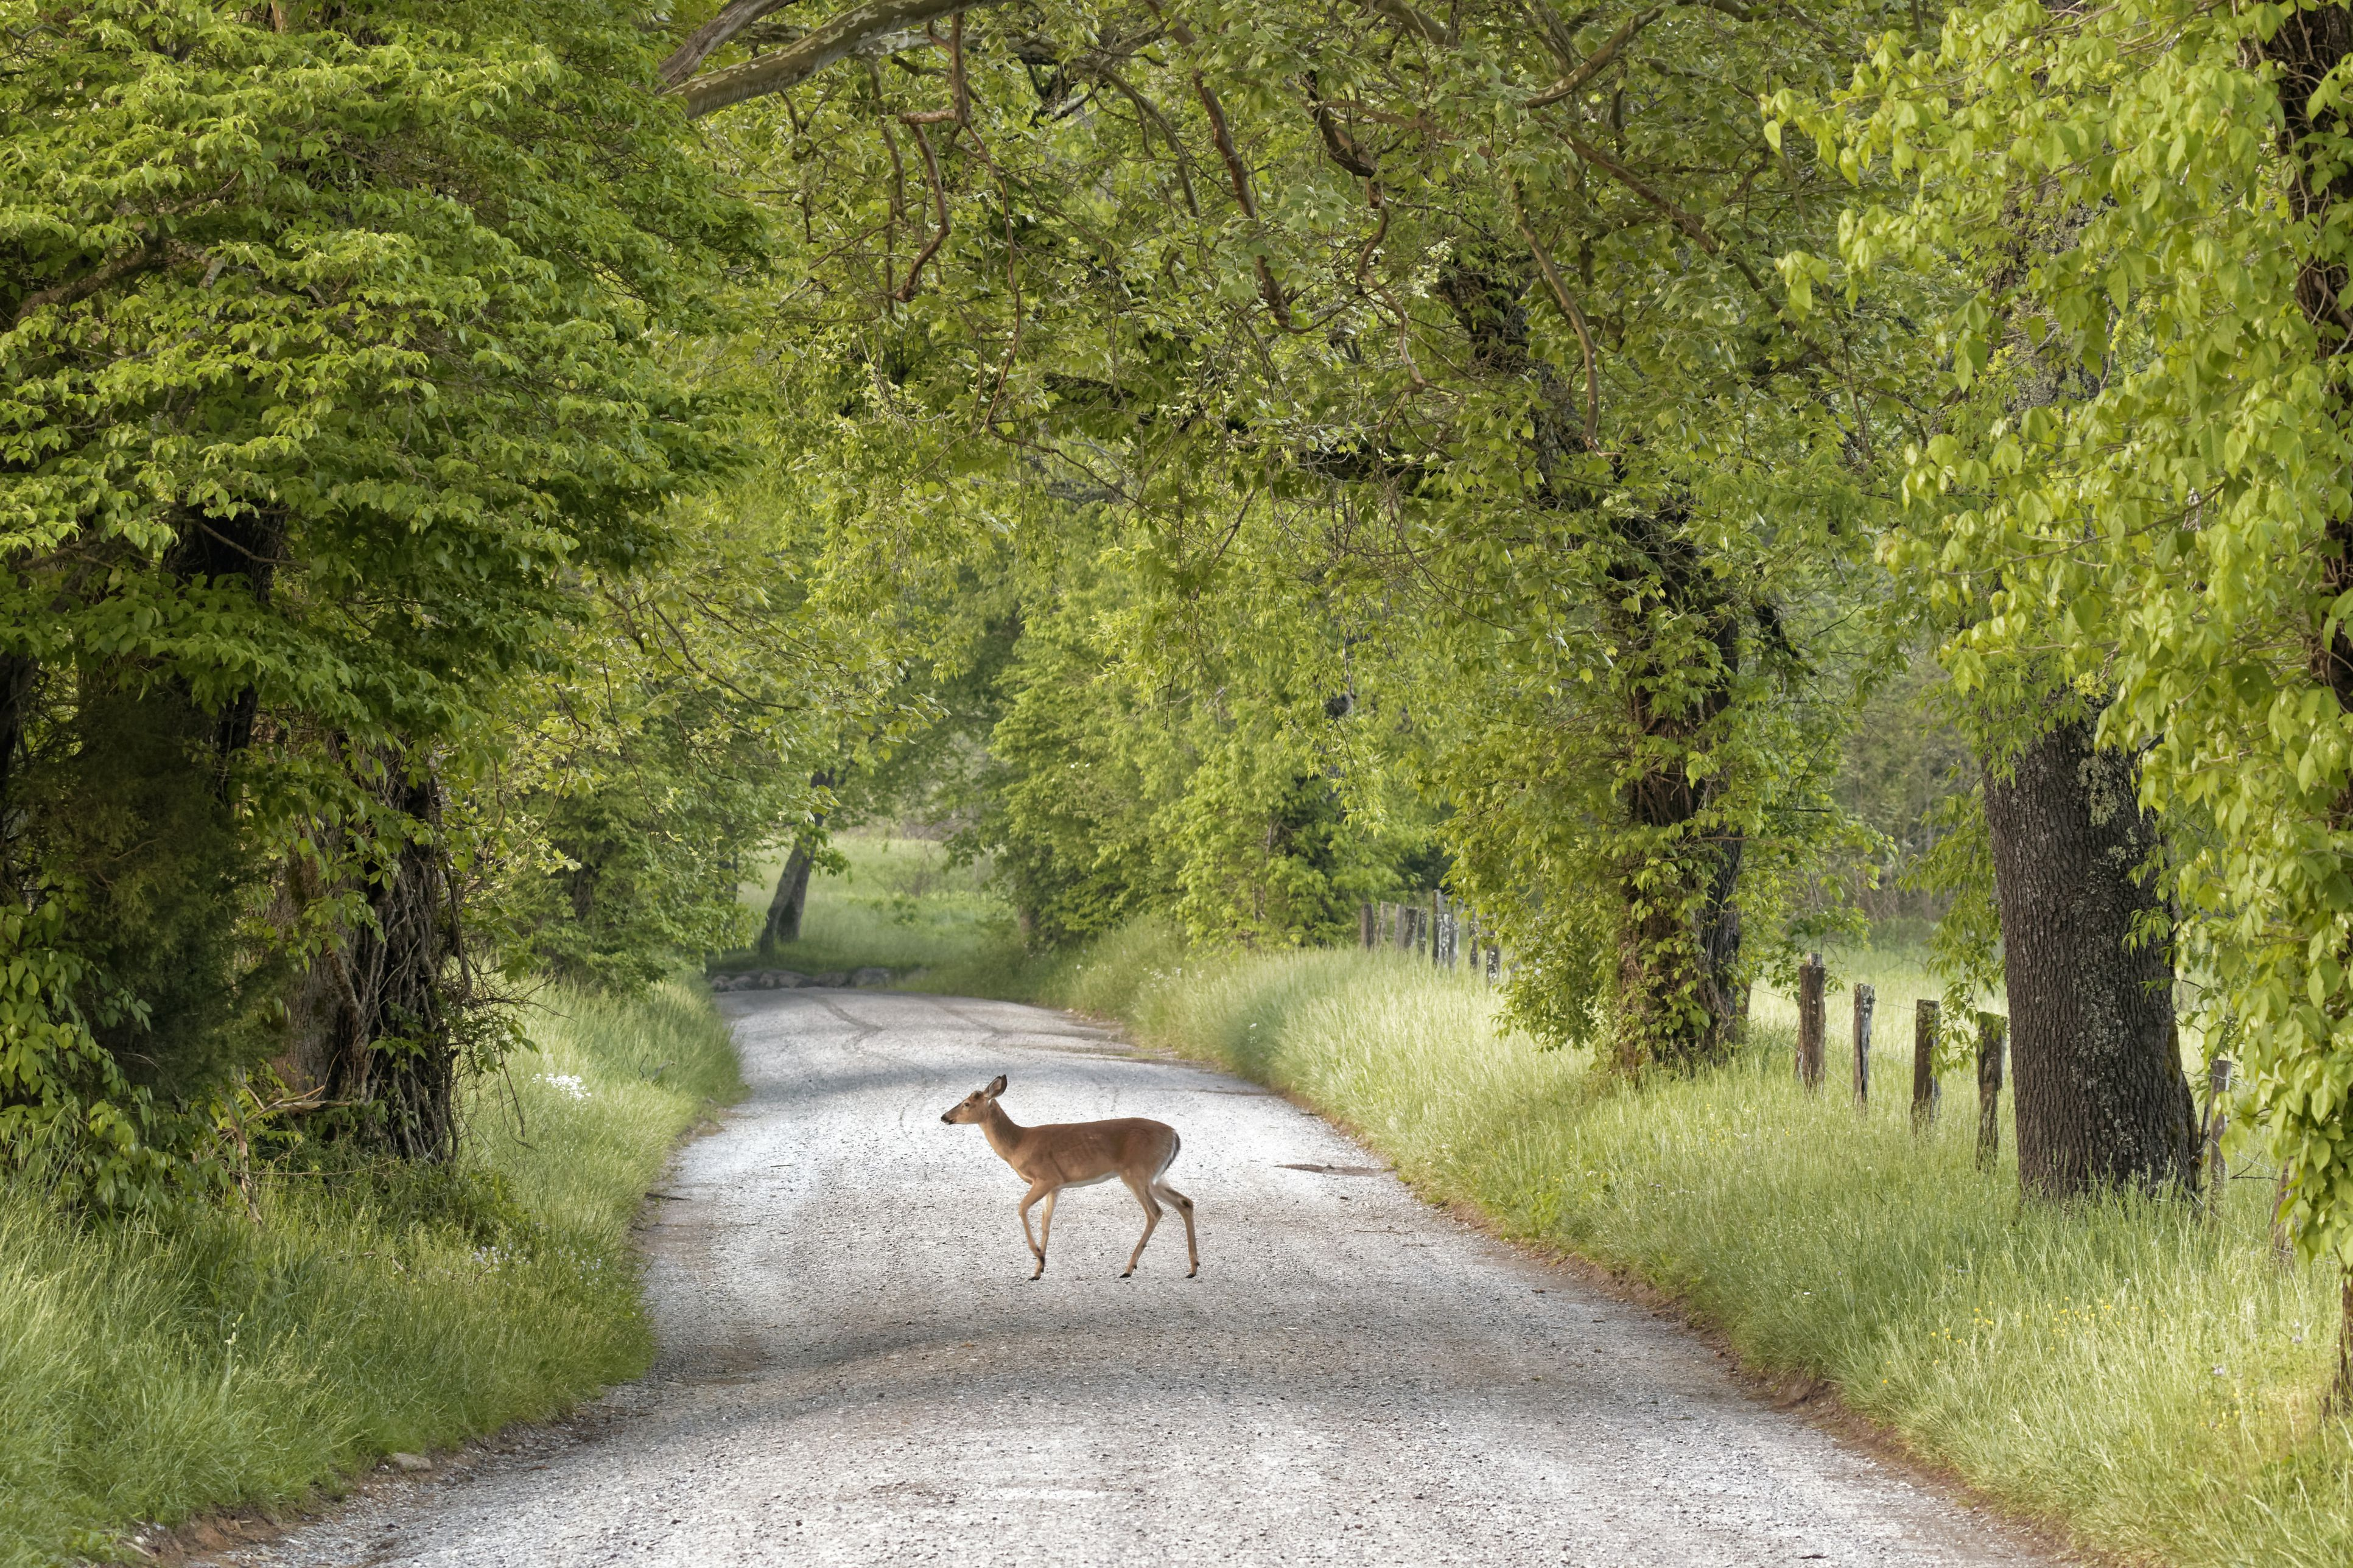 Female deer (cervidae) crossing Sparks Lane, Cades Cove, Great Smoky Mountains National Park, Tennessee, USA